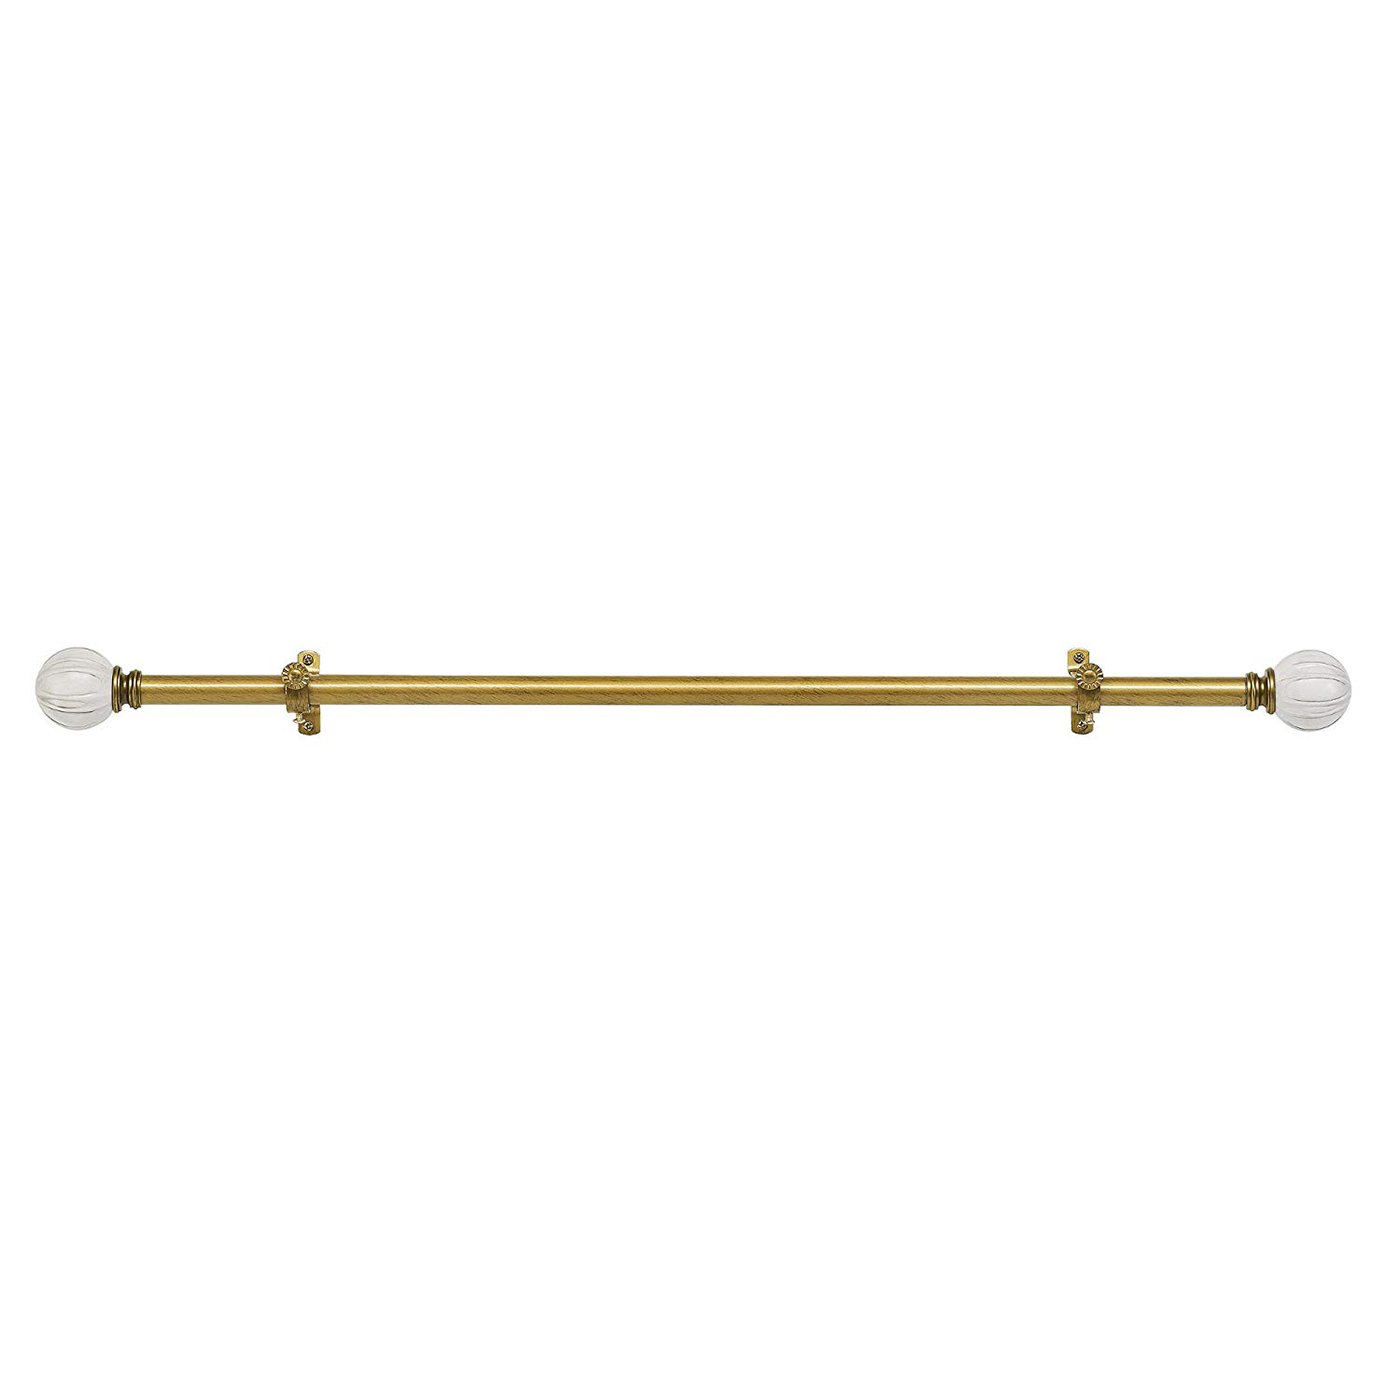 Curtain-Rod-Decorative-Telescopic-Cafe-Window-Drapery-Rods-Set-w-Modern-Finials thumbnail 41